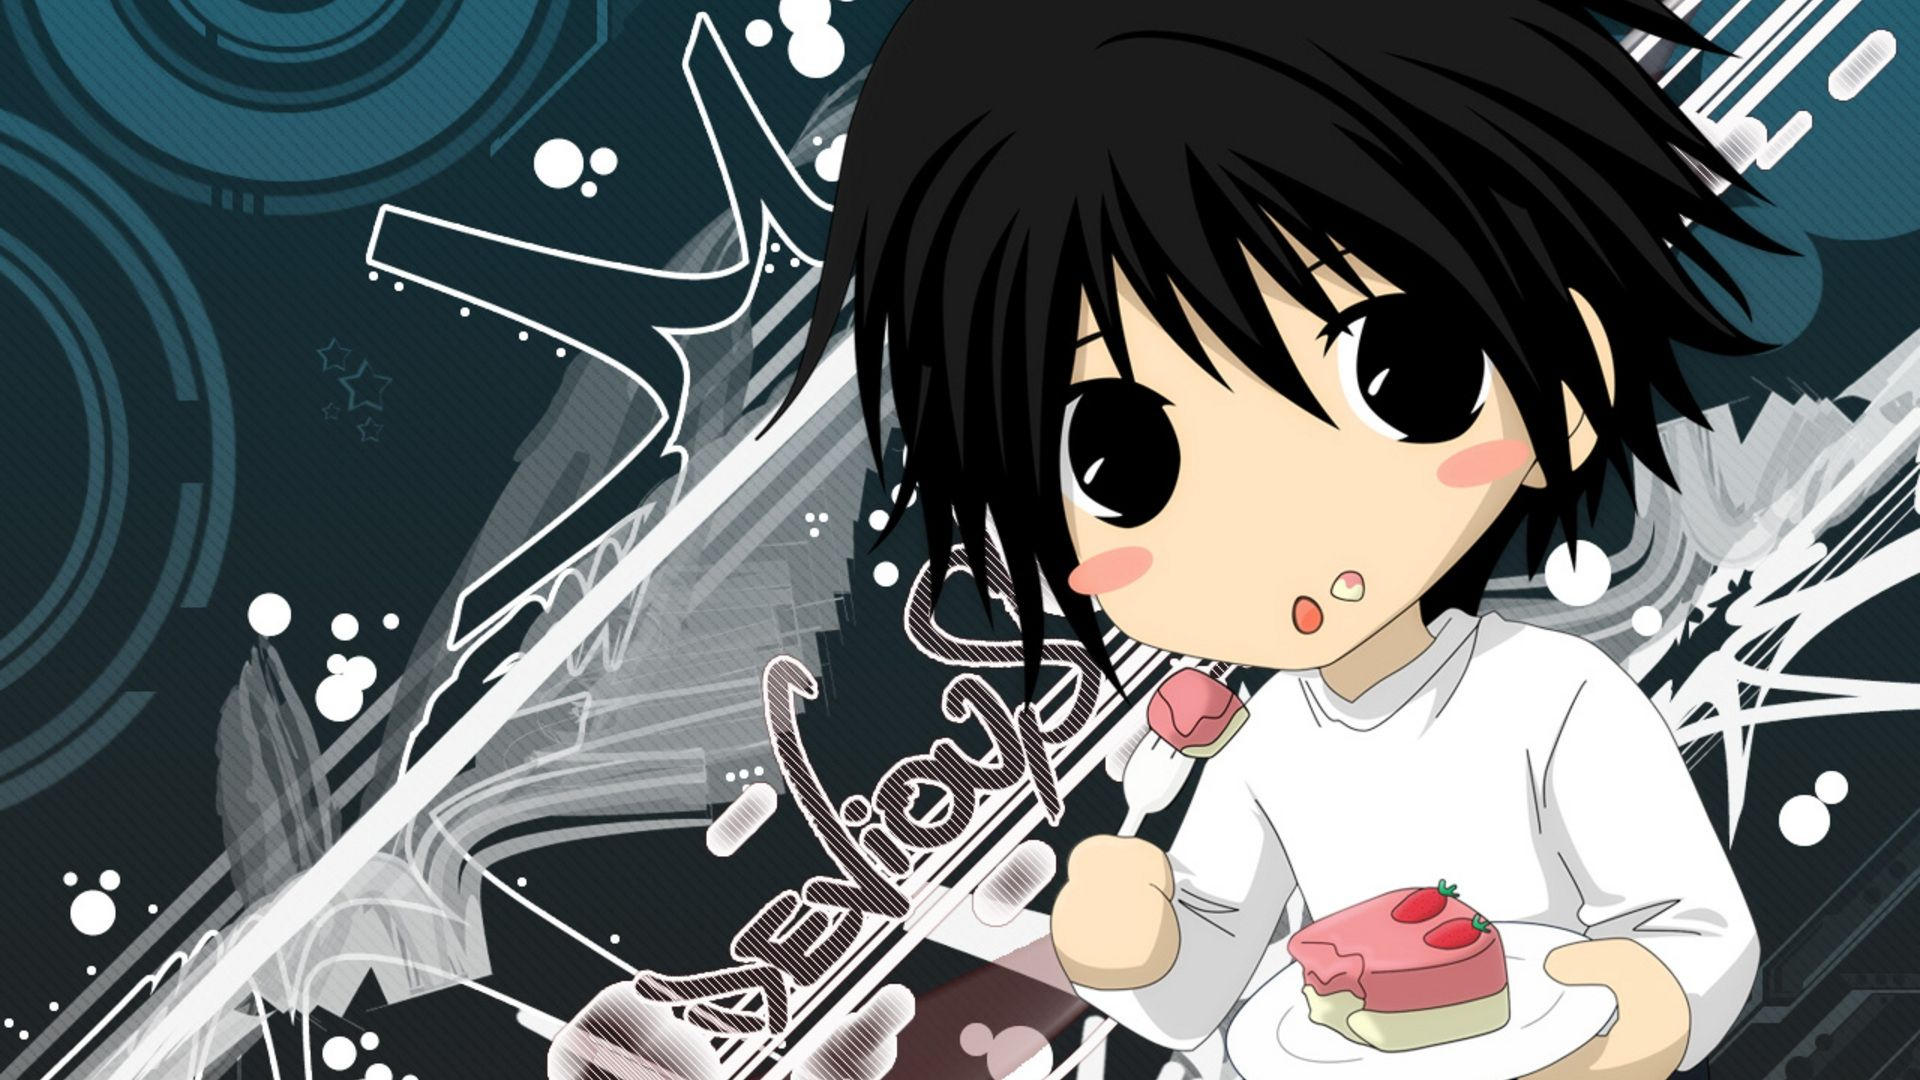 Pin On My Pins Death note anime hd wallpaper